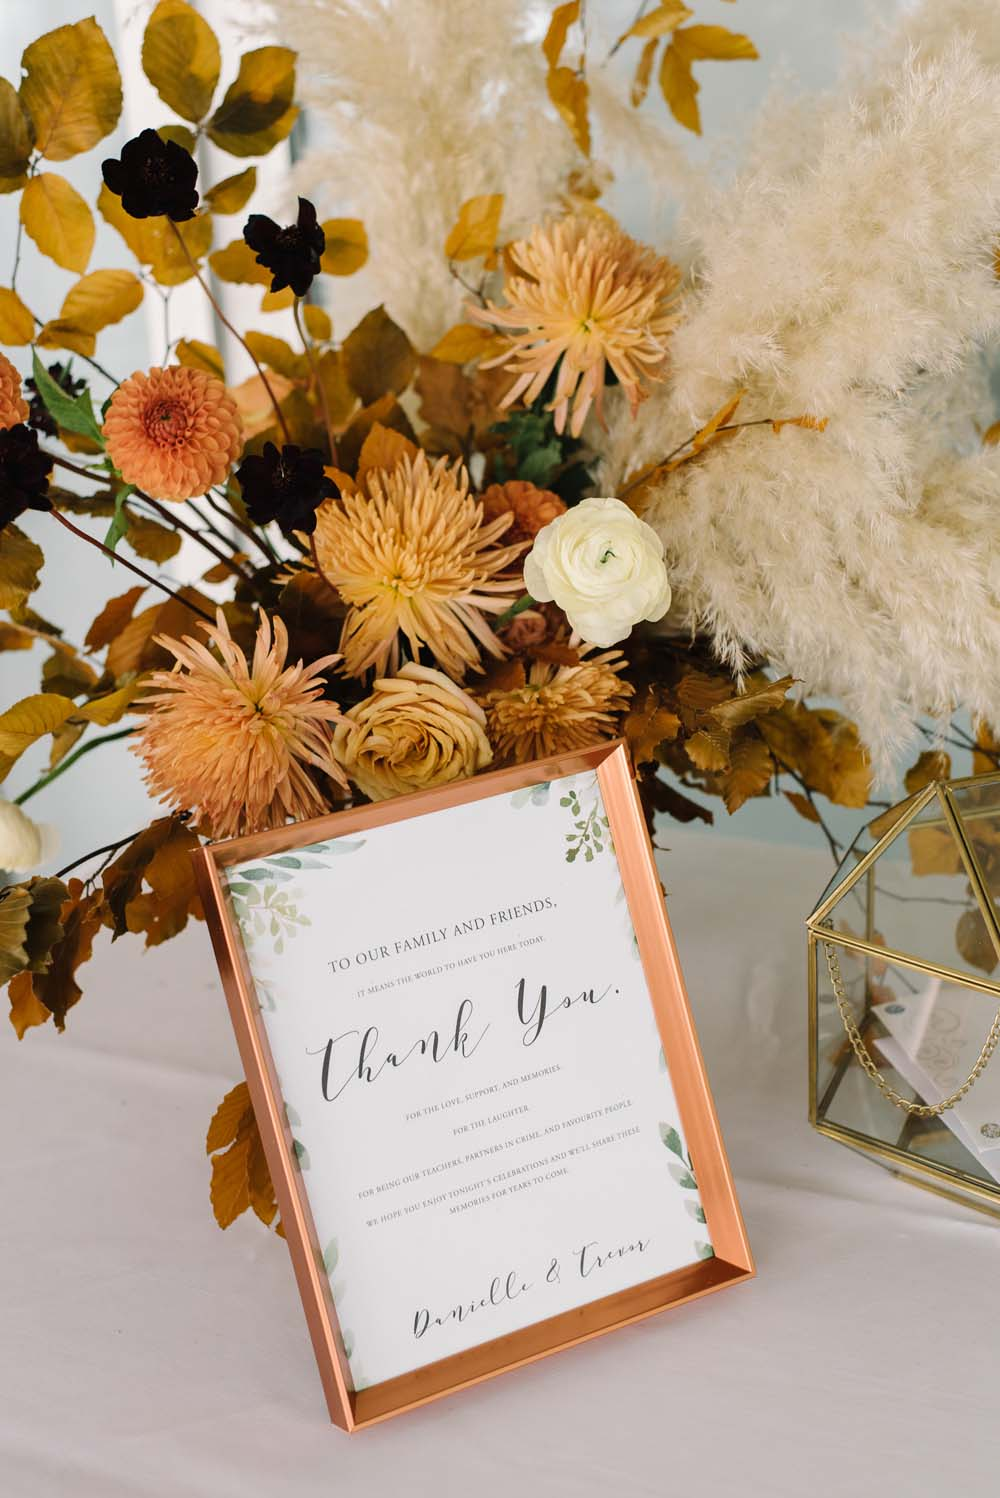 A Rustic Lakeside Wedding in Toronto, Ontario - Thank You Signage